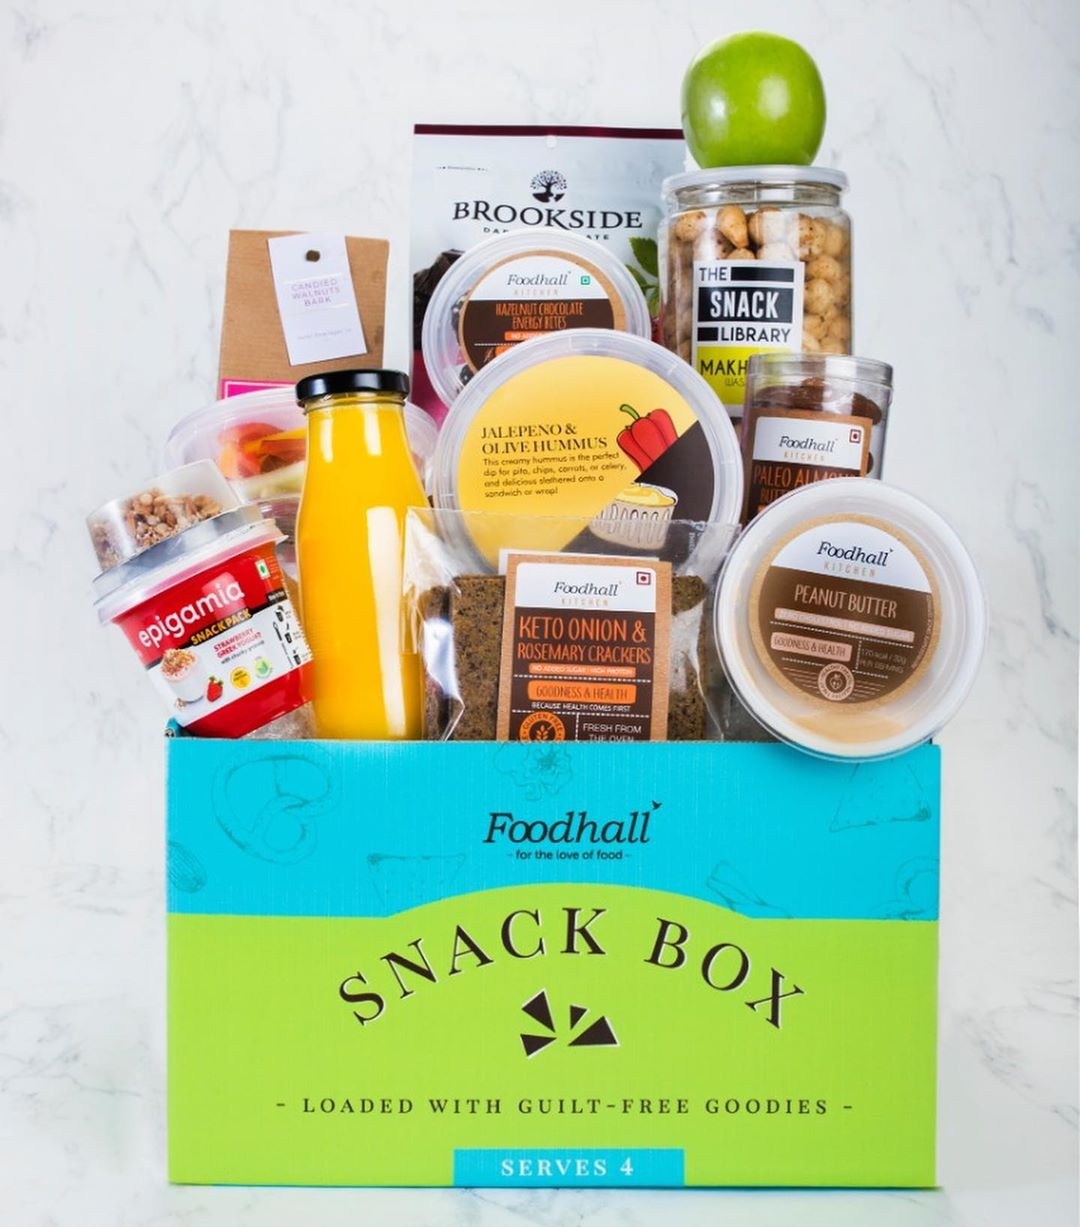 Your perfect World Cup snacking companion is just a call away. Visit a Foodhall near you or call us on 8095031111 to get your Foodhall Snack Box. Loaded with a rich assortment of gourmet delights, this box is all you need to have a good time over good food.  P.S Connoisseurs Club members can avail a special price for our two variants. Reach out to your nearest store for more information.  P.P.S Mumbai, if the rains have you down and out, order off of the @scootsyit app and let the game spirit carry on!